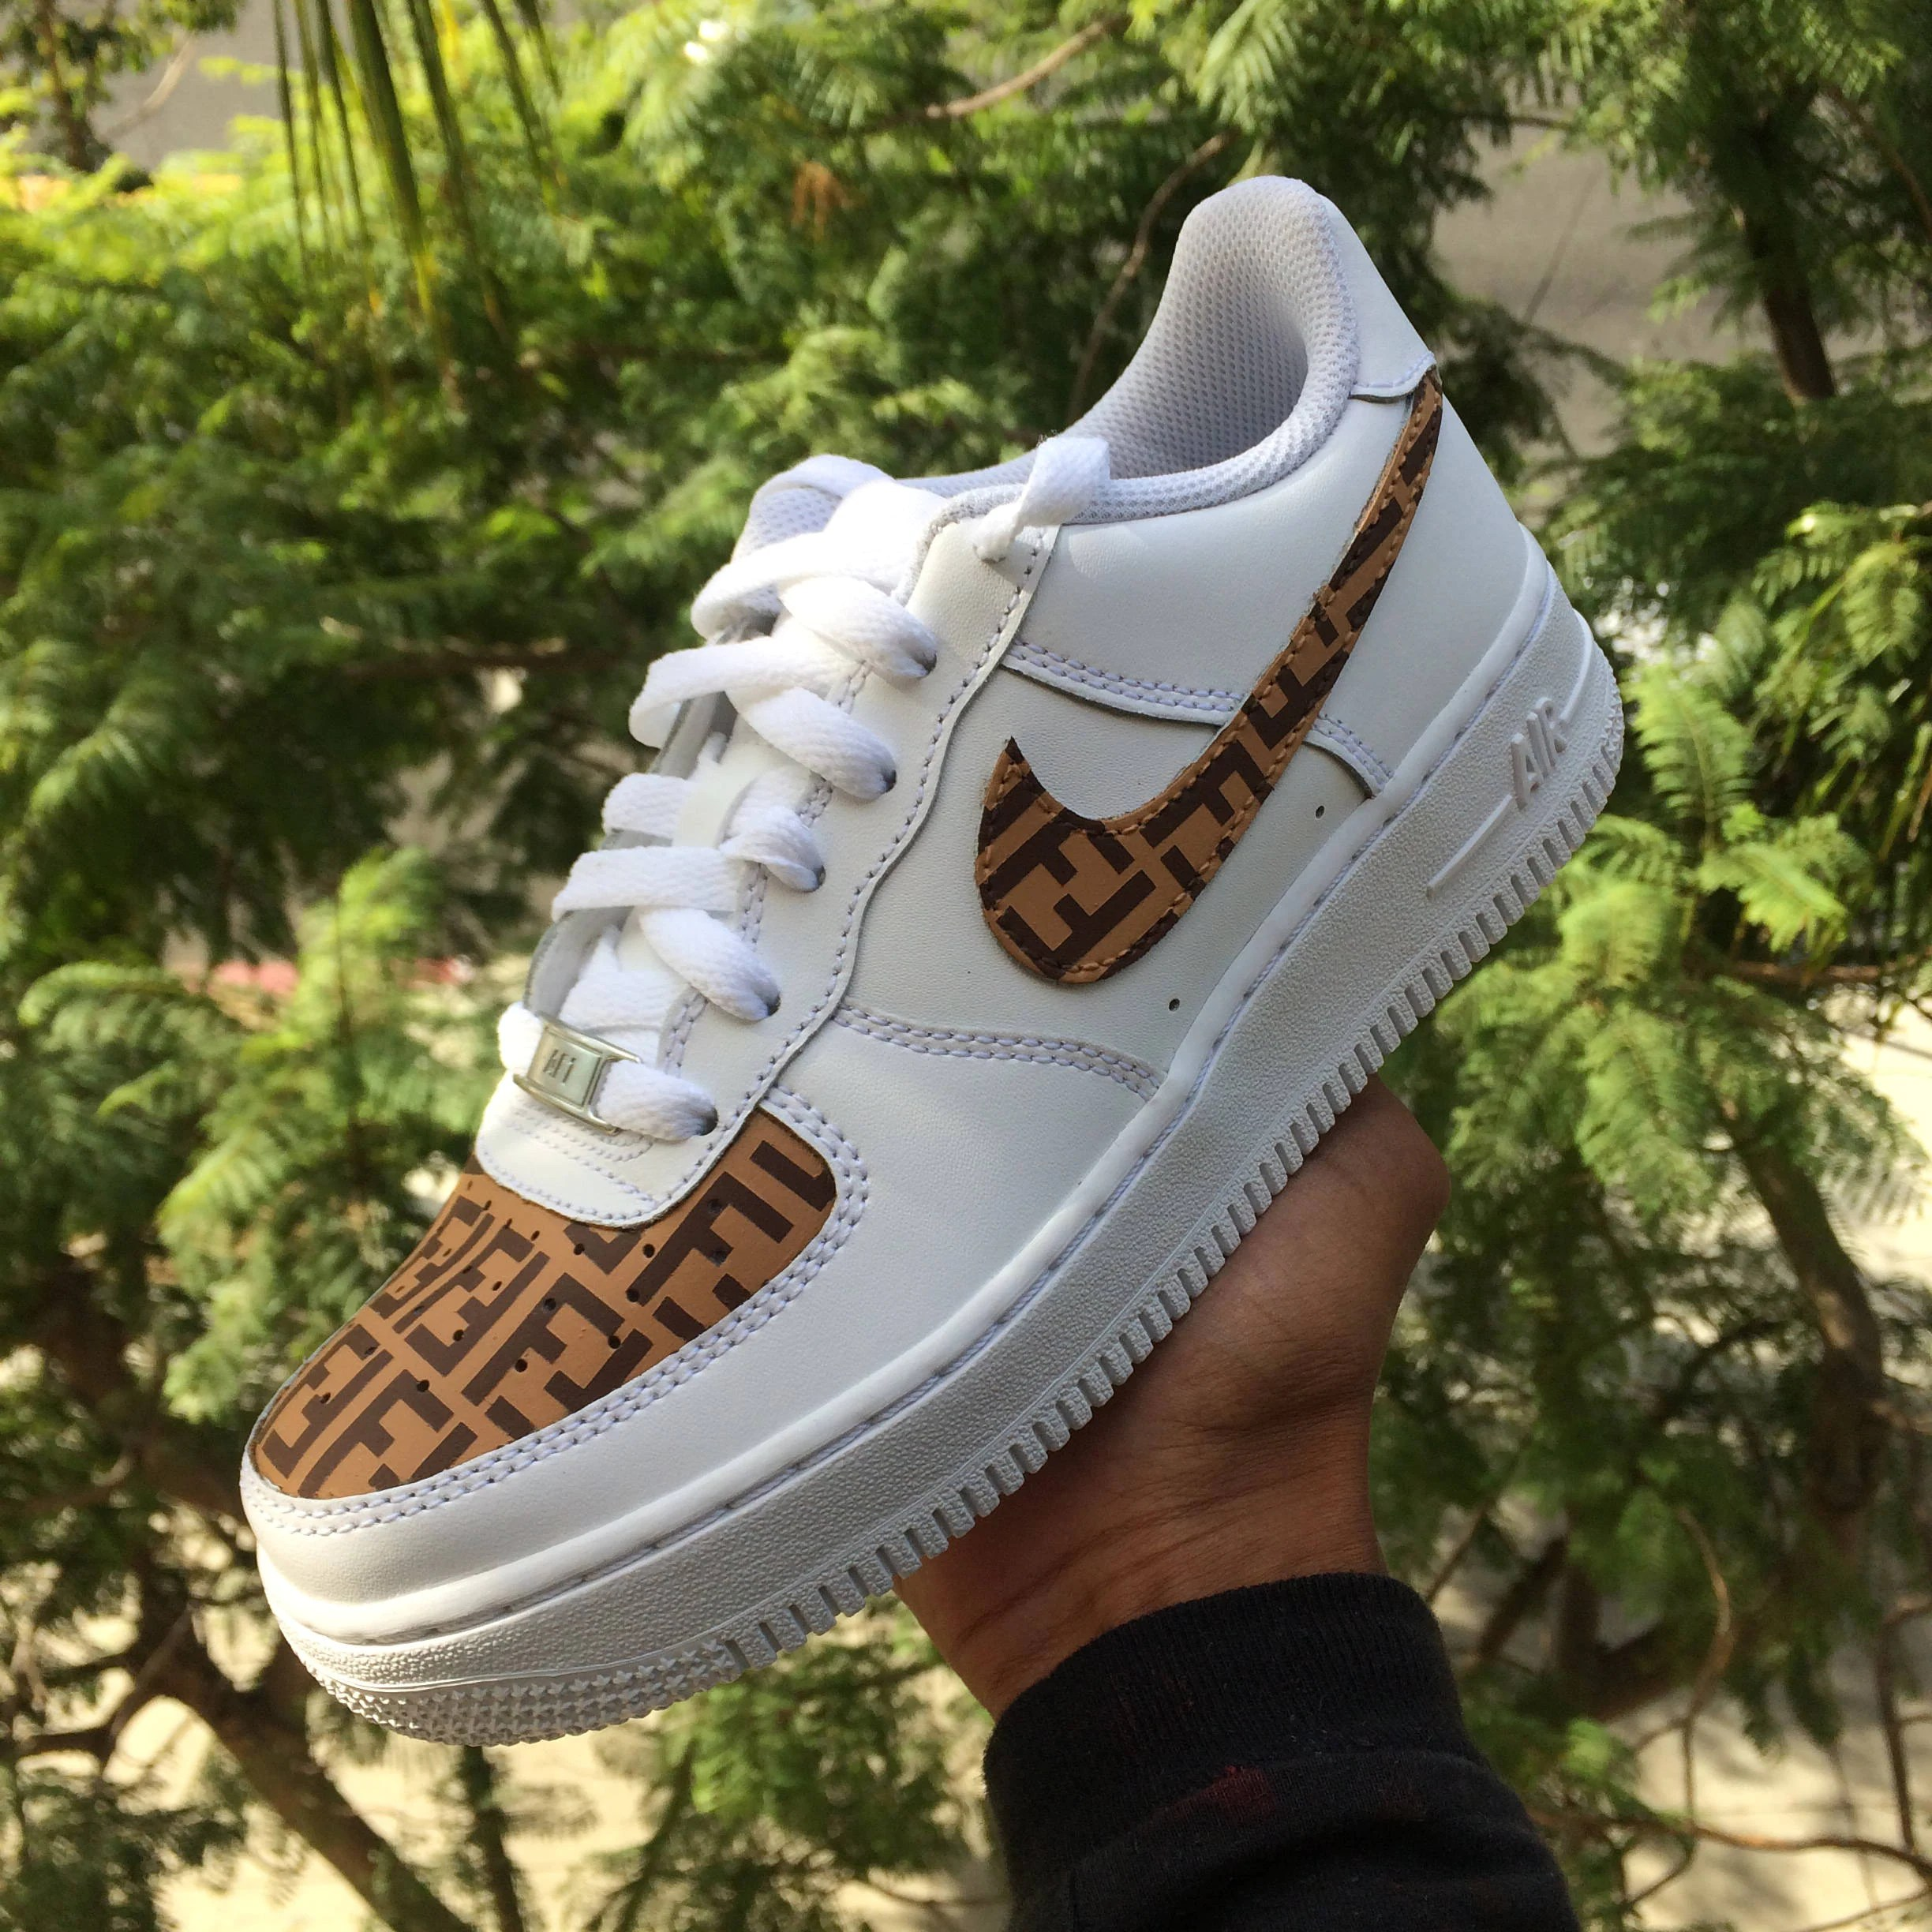 970c5441e2f8 Custom Nike Air Force 1 Brown Fendi Monogram Print